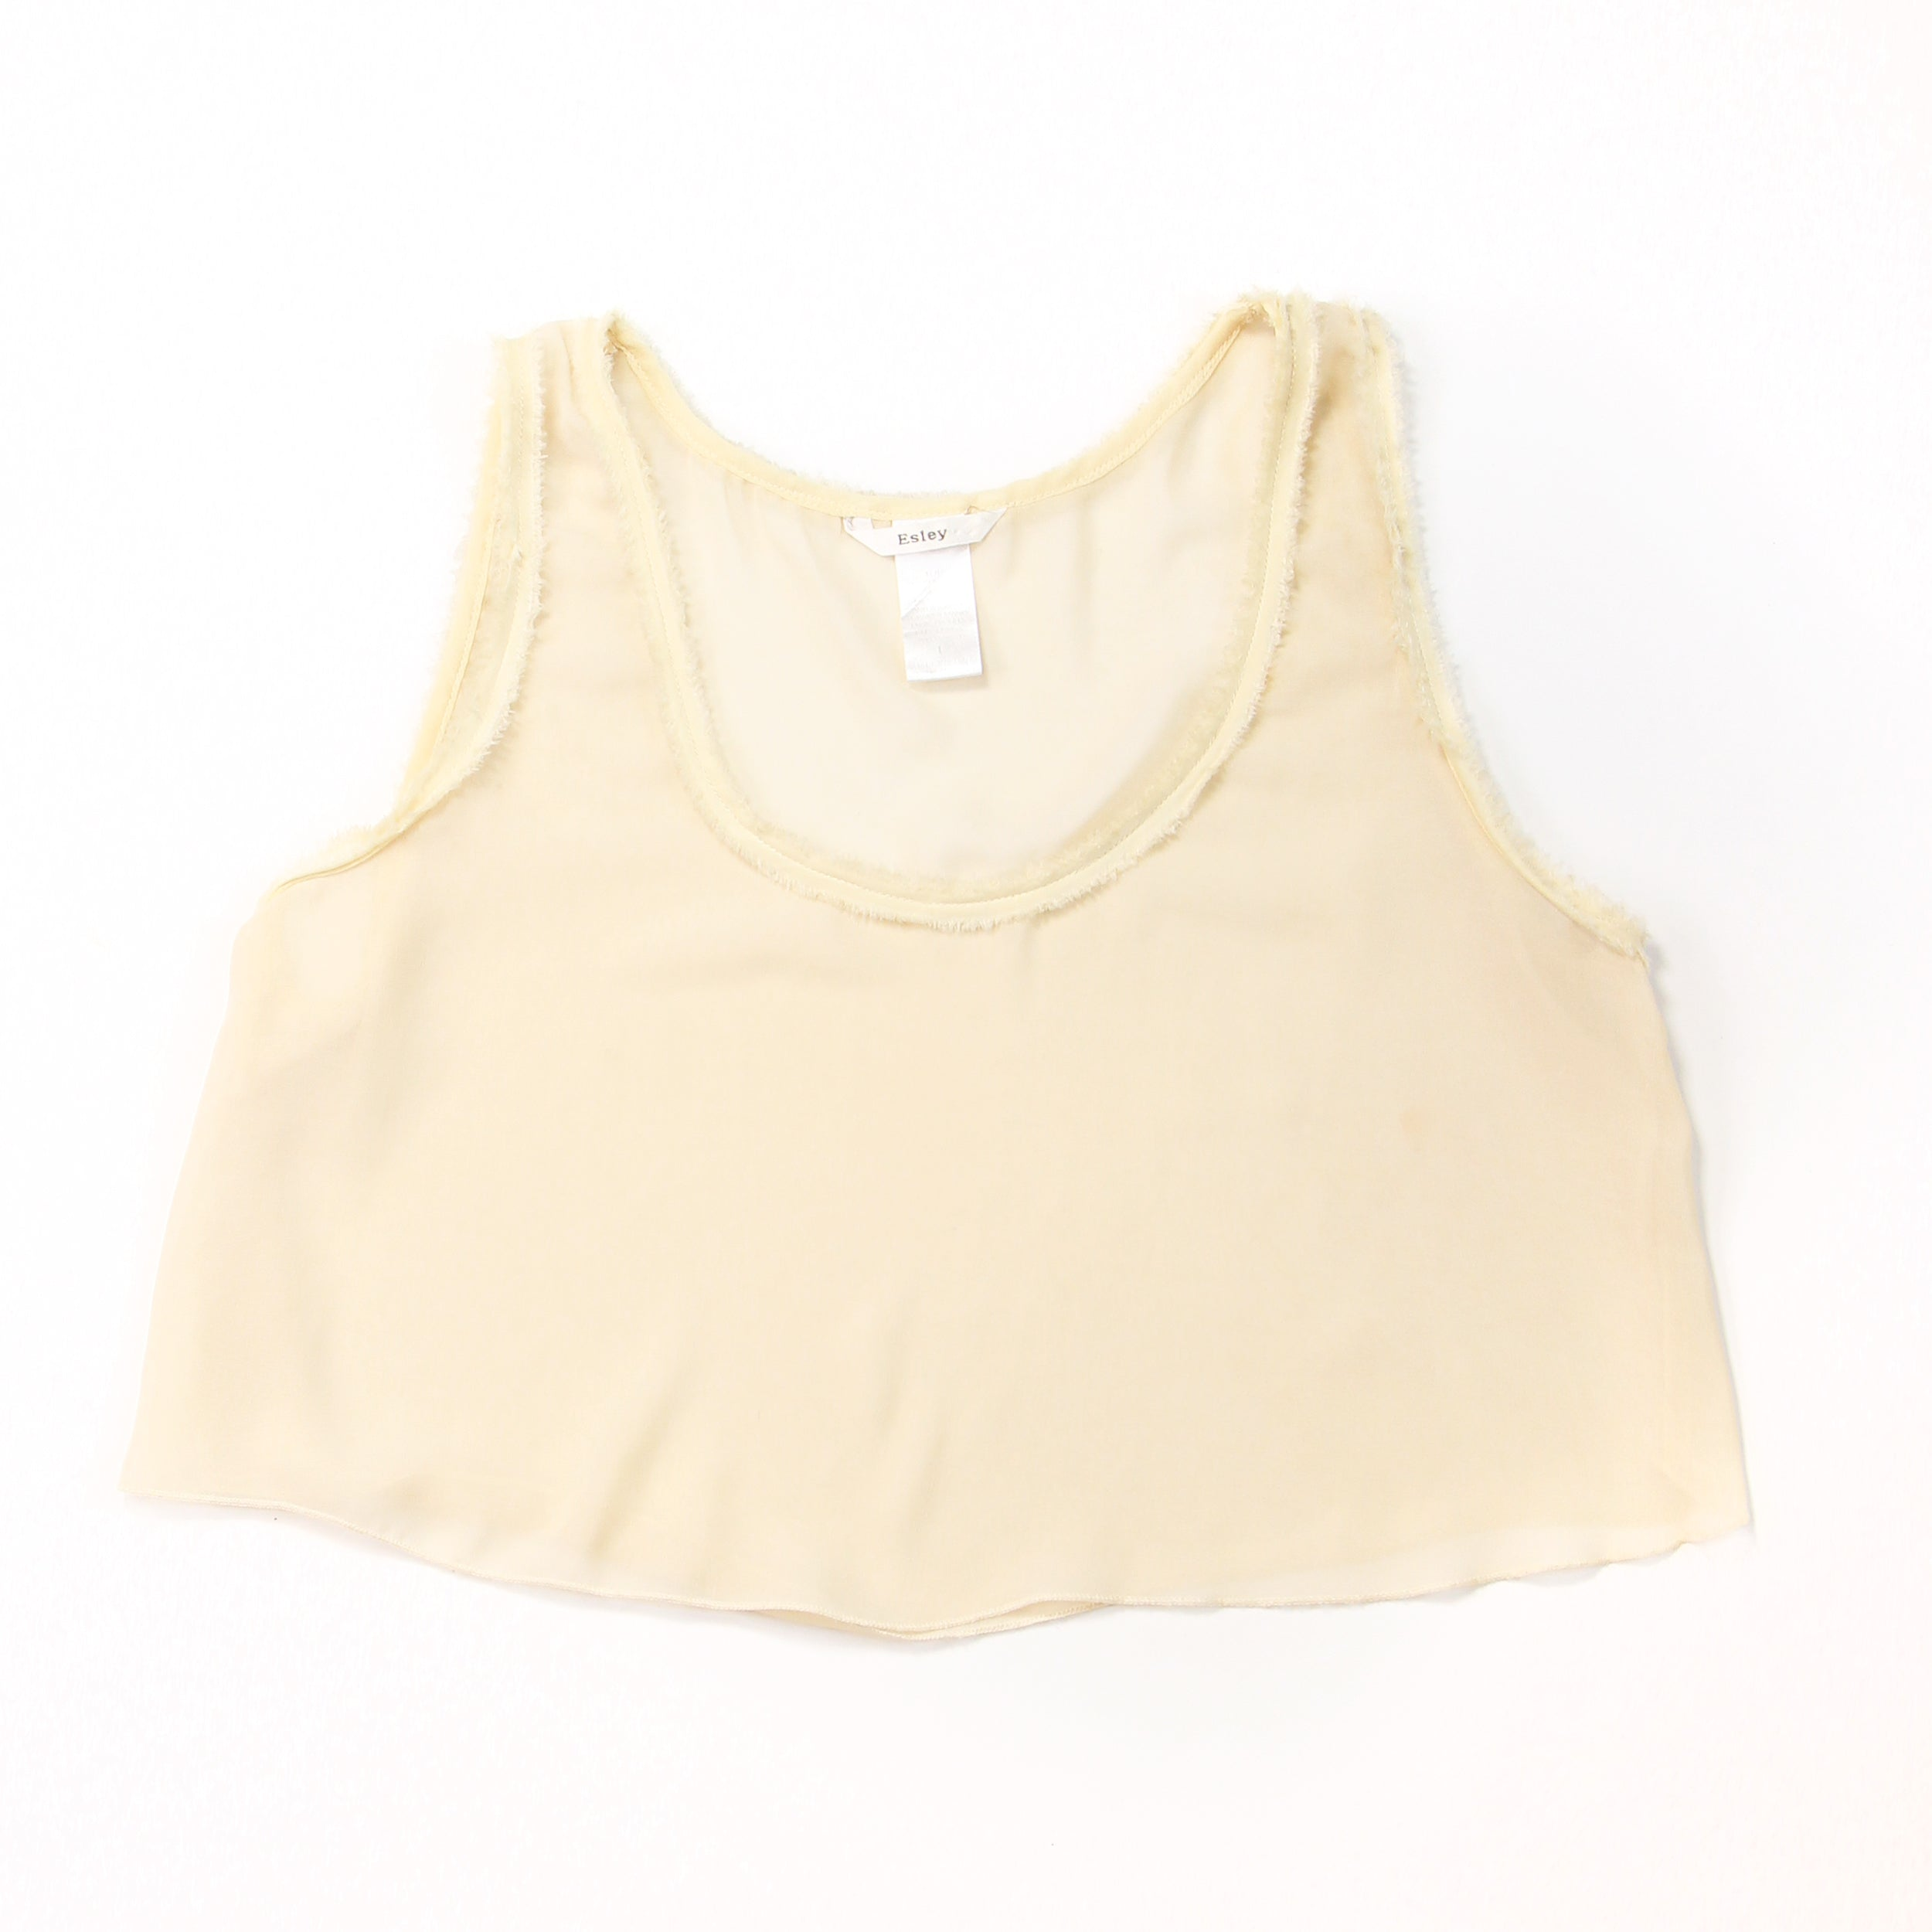 Elsey - White Sleeveless Blouse - L